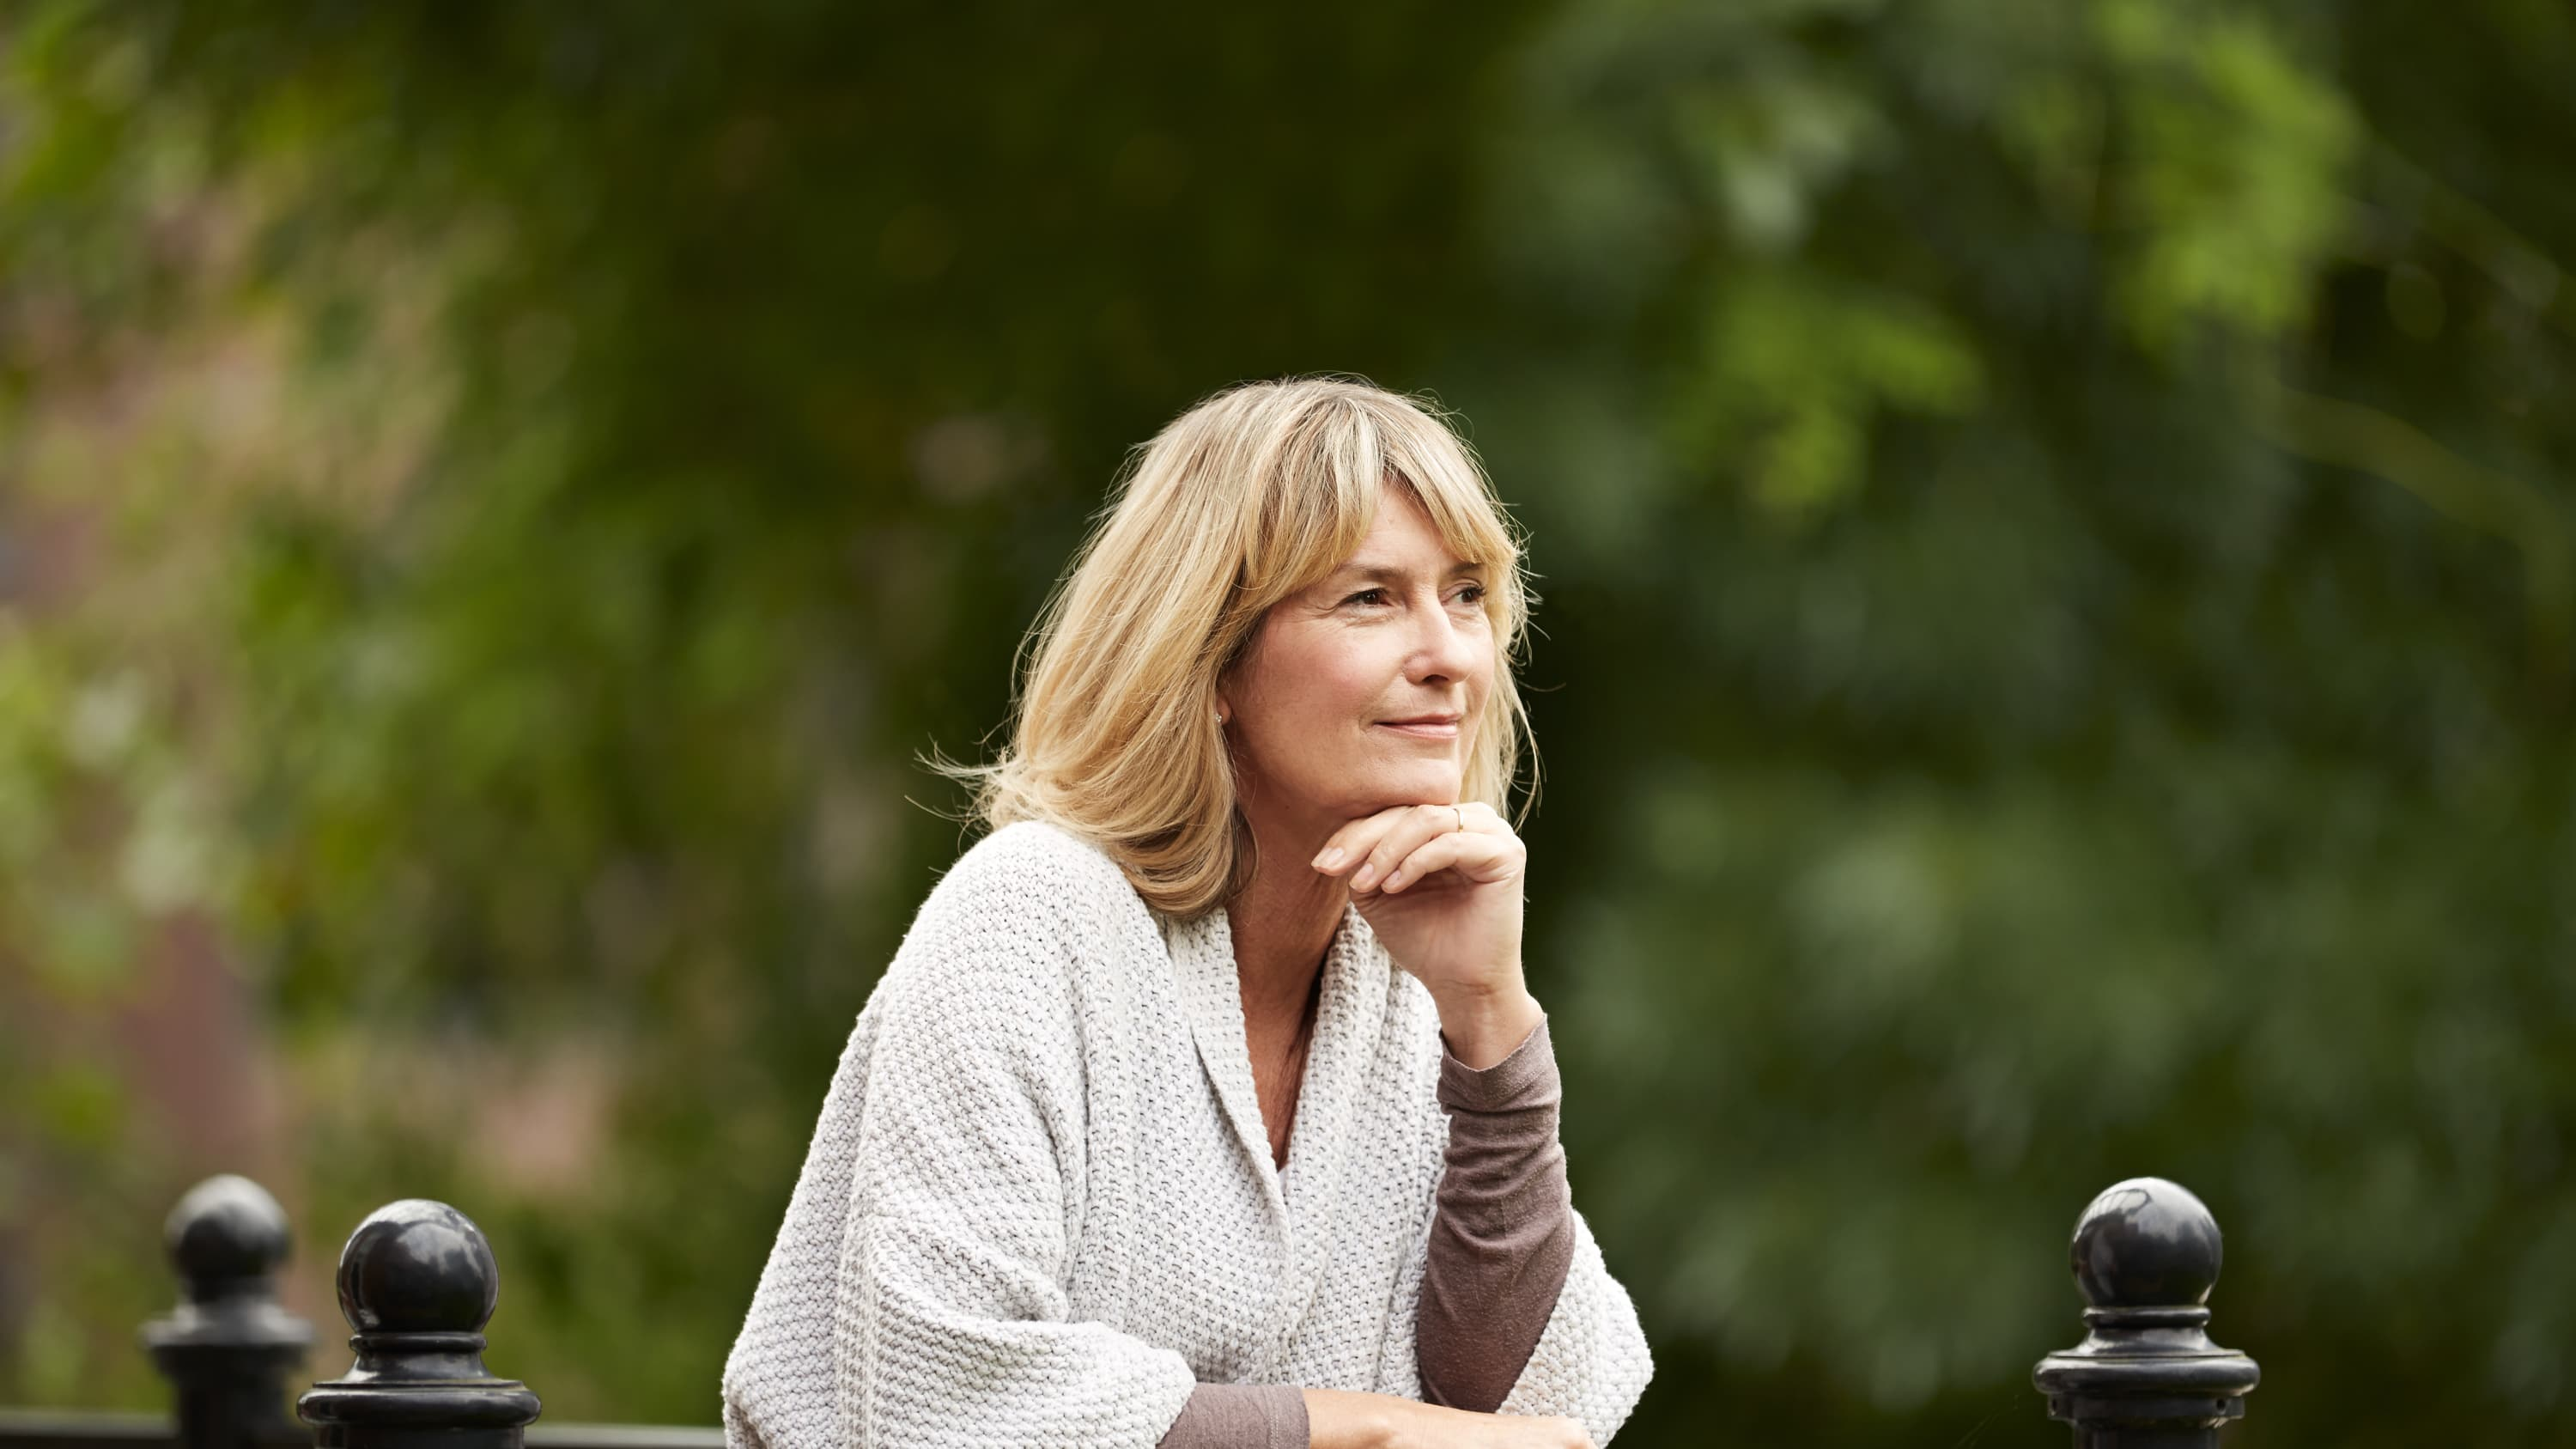 A middle-aged woman gazes out above her balcony, deep in thought, possibly about low bone density